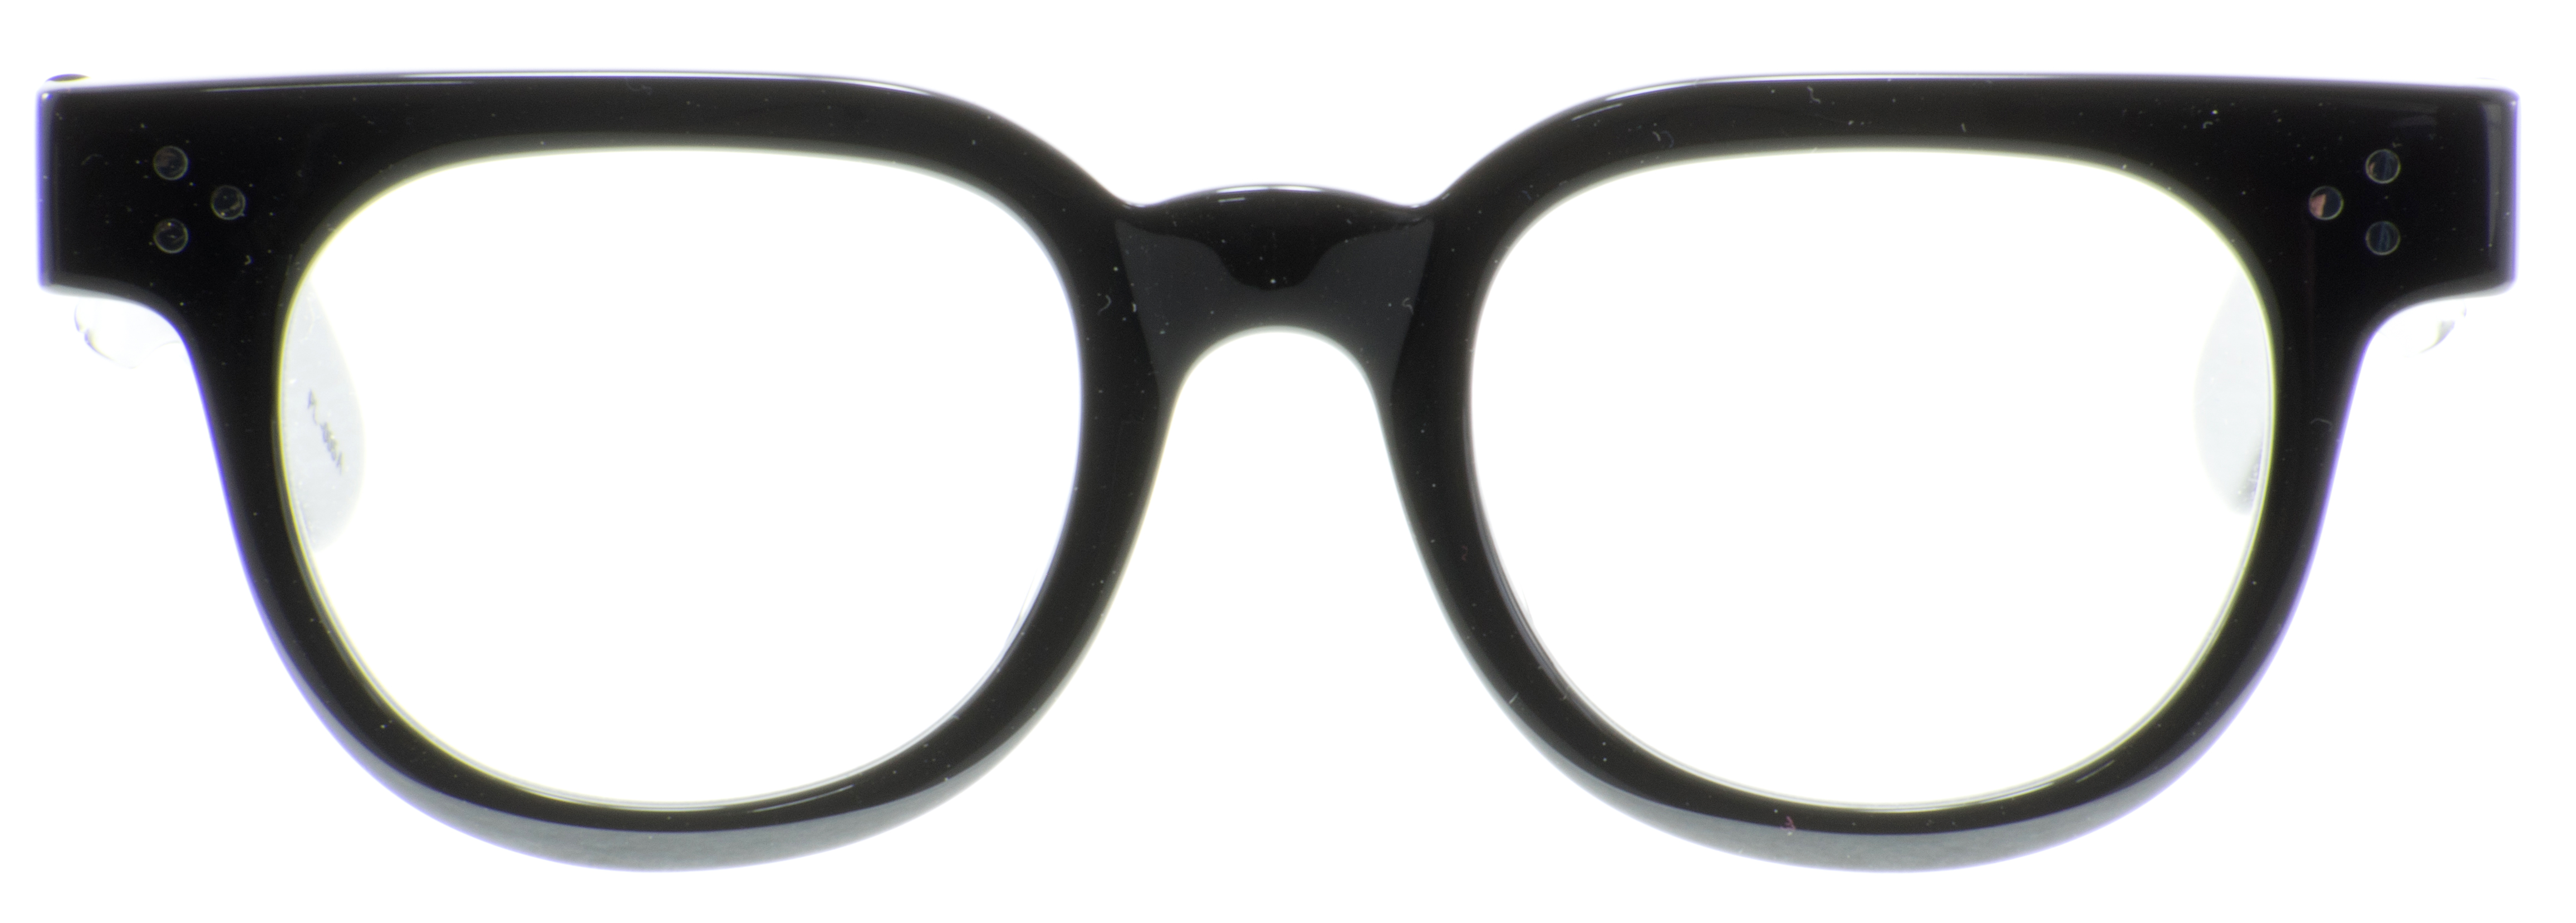 JULIUS TART OPTICAL FDR 46 Black 1360270601